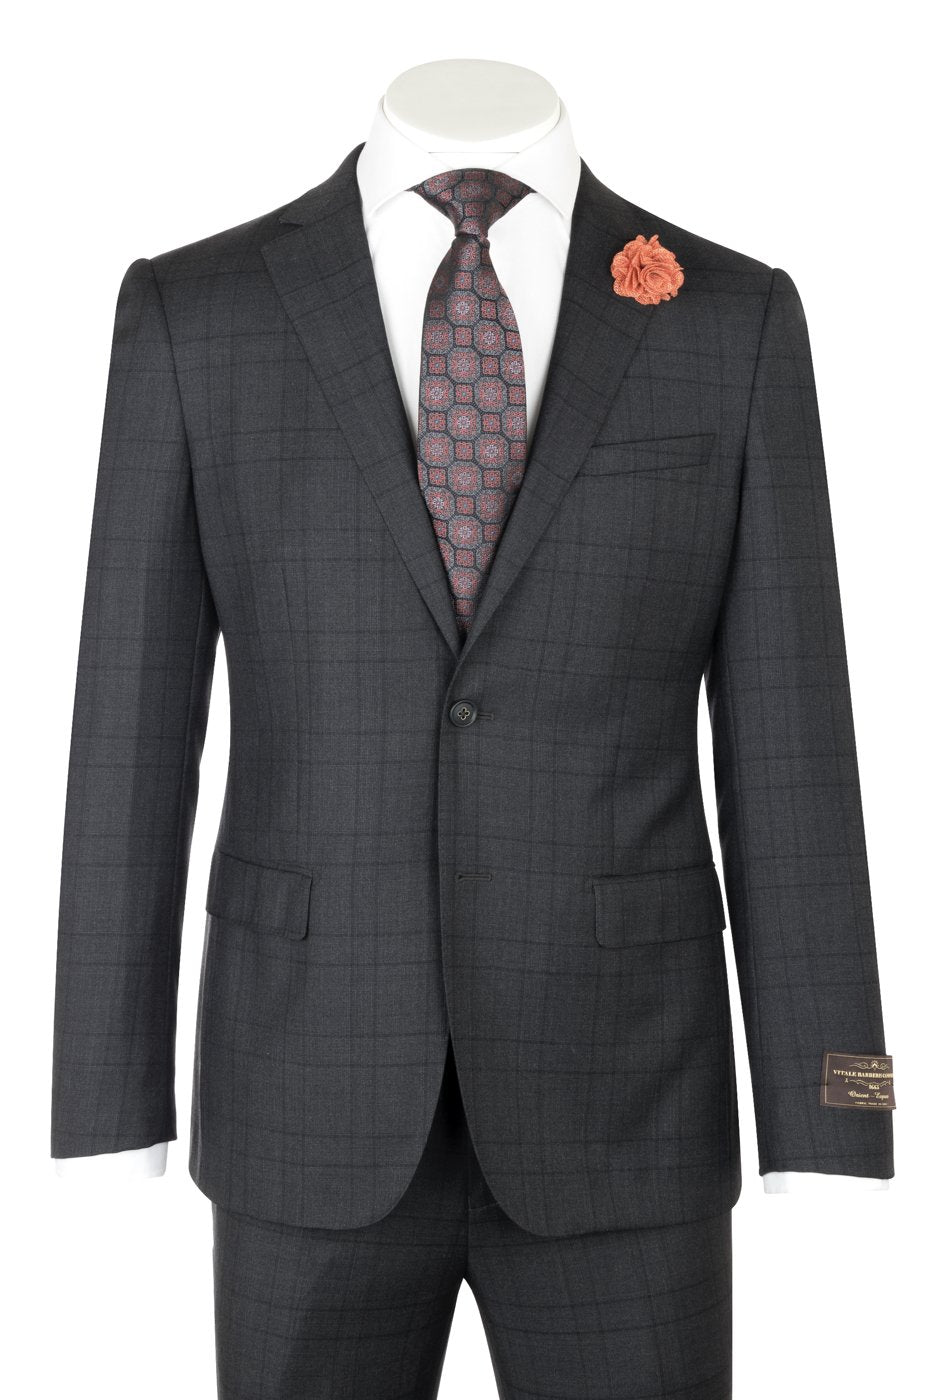 PORTO Slim Fit, Charcoal Gray with Black Stripe, Pure Wool Suit by VITALE BARBERIS CANONICO Cloth by Canaletto Menswear 286.740/1